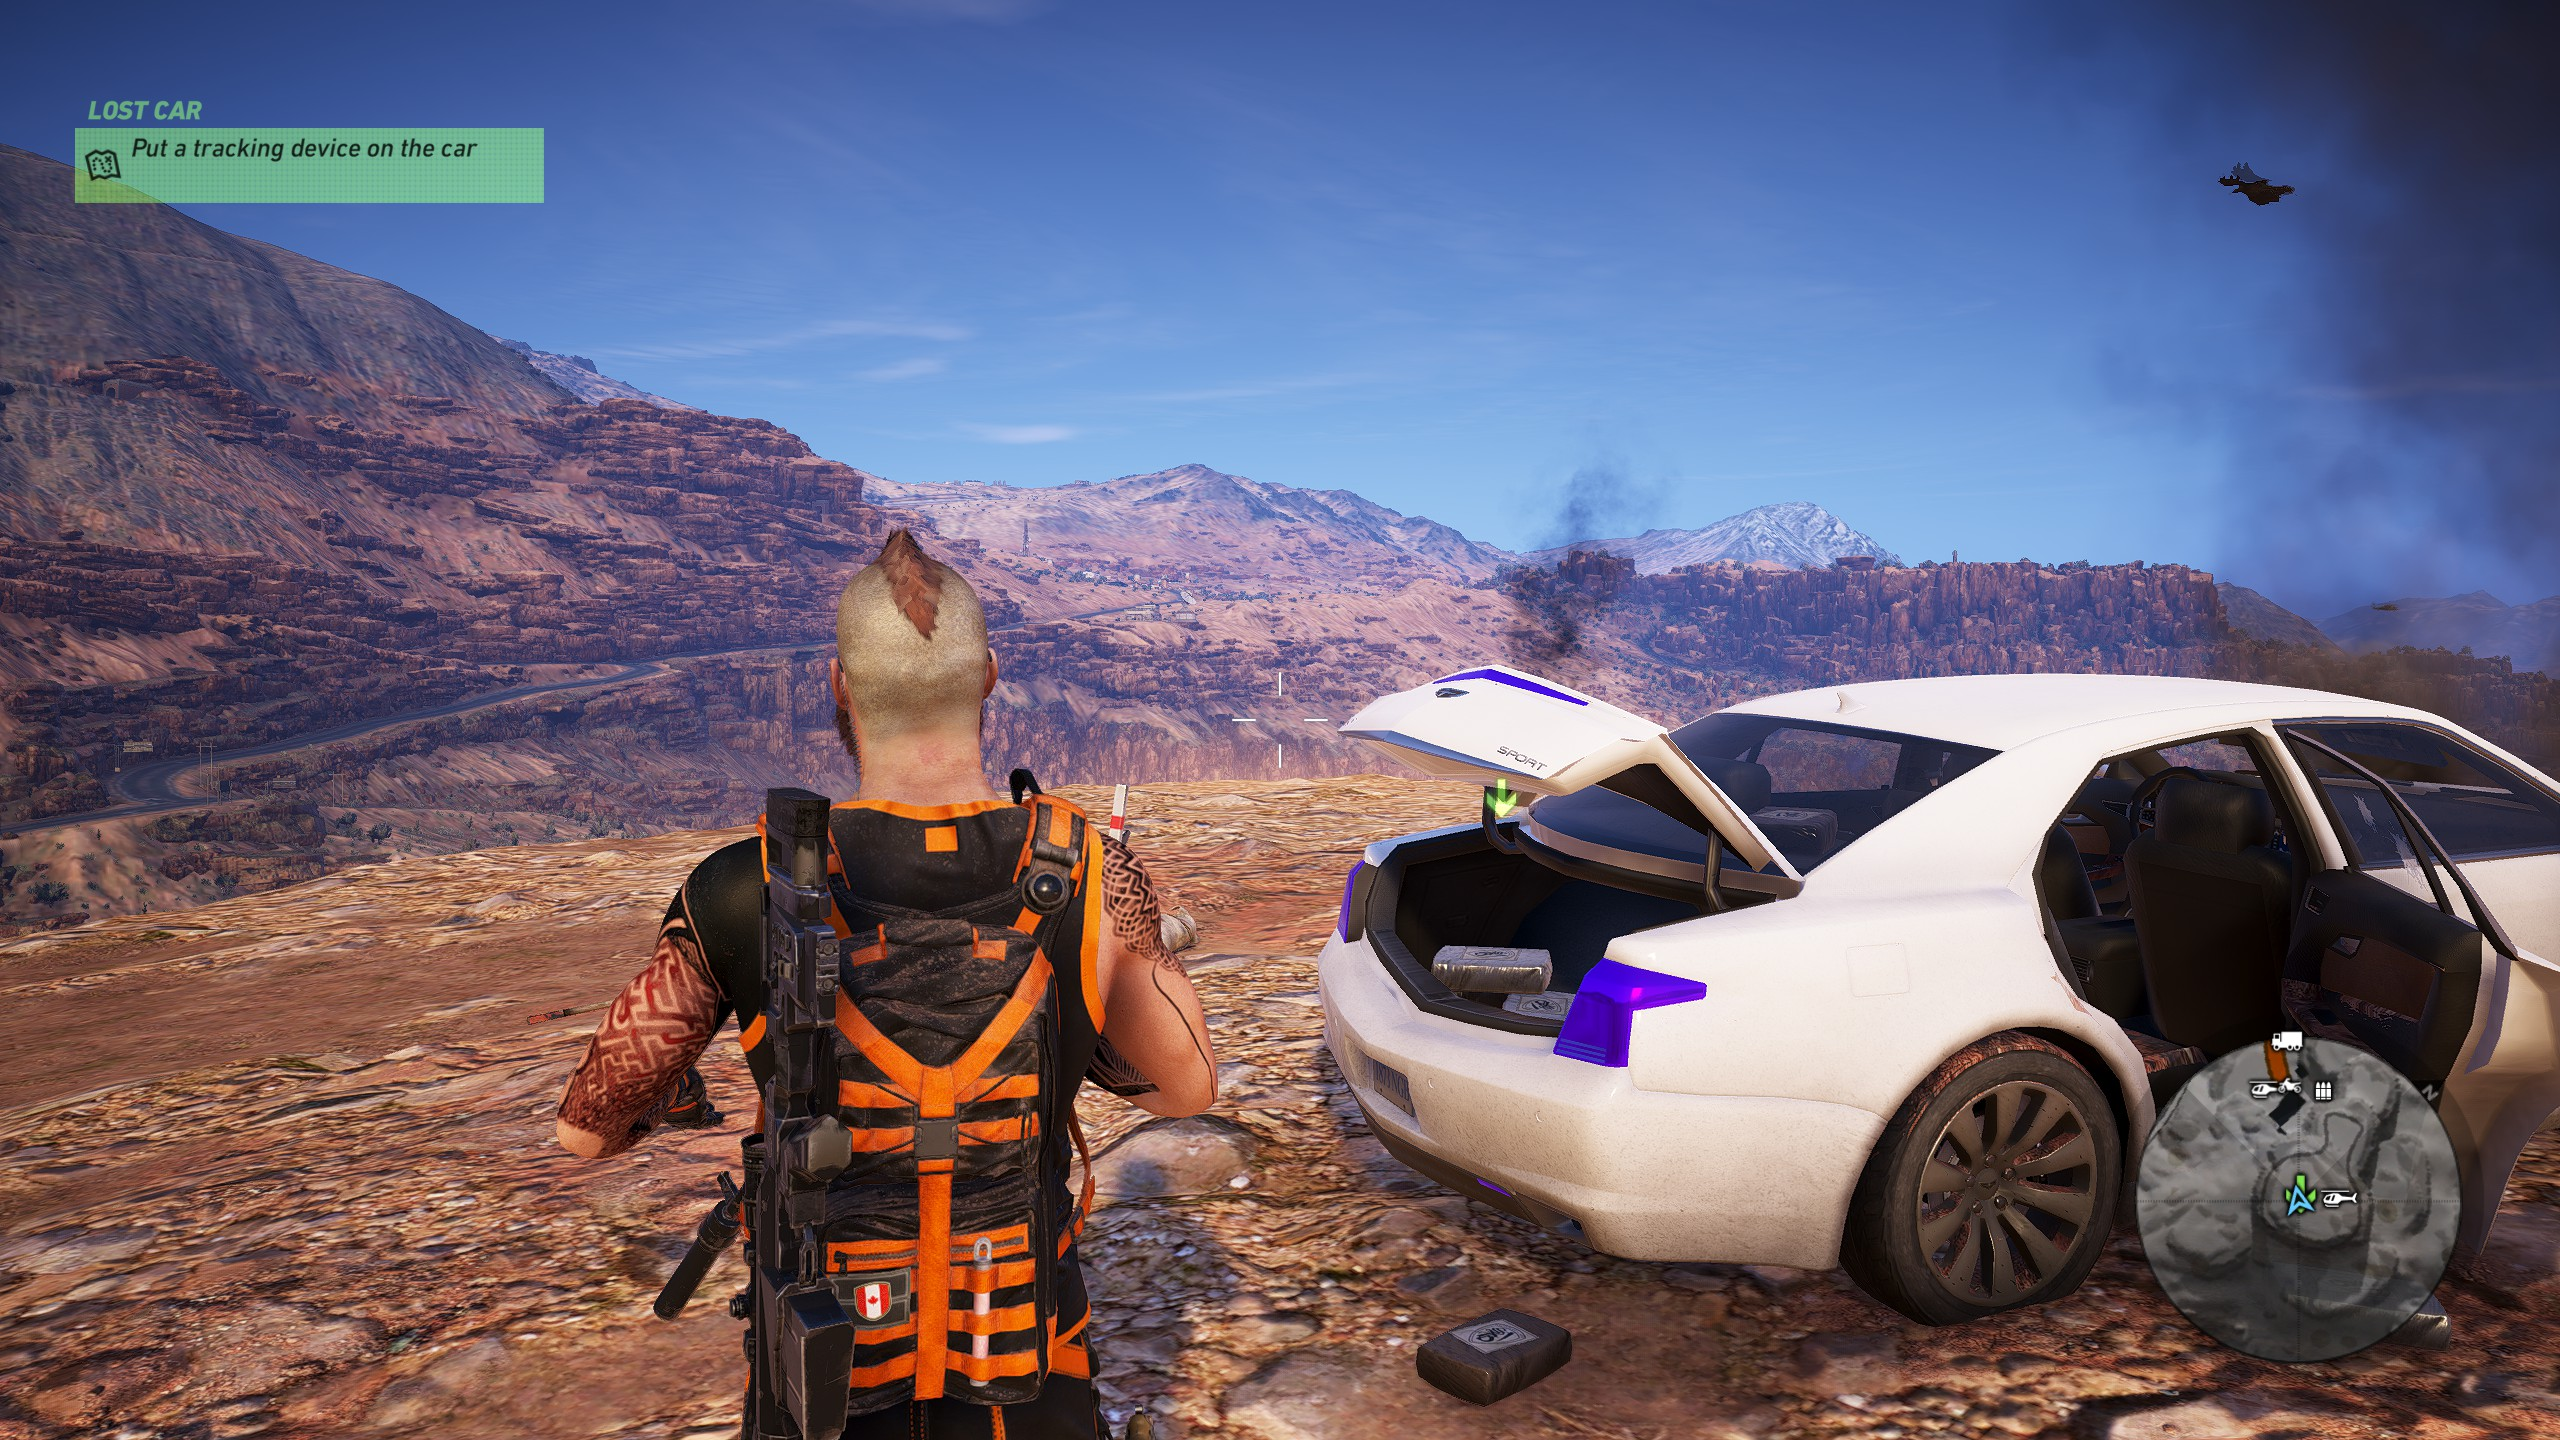 Completing a Lost Car mission in Narco Road will give you 85 followers, which isn't worth the pain the ass.